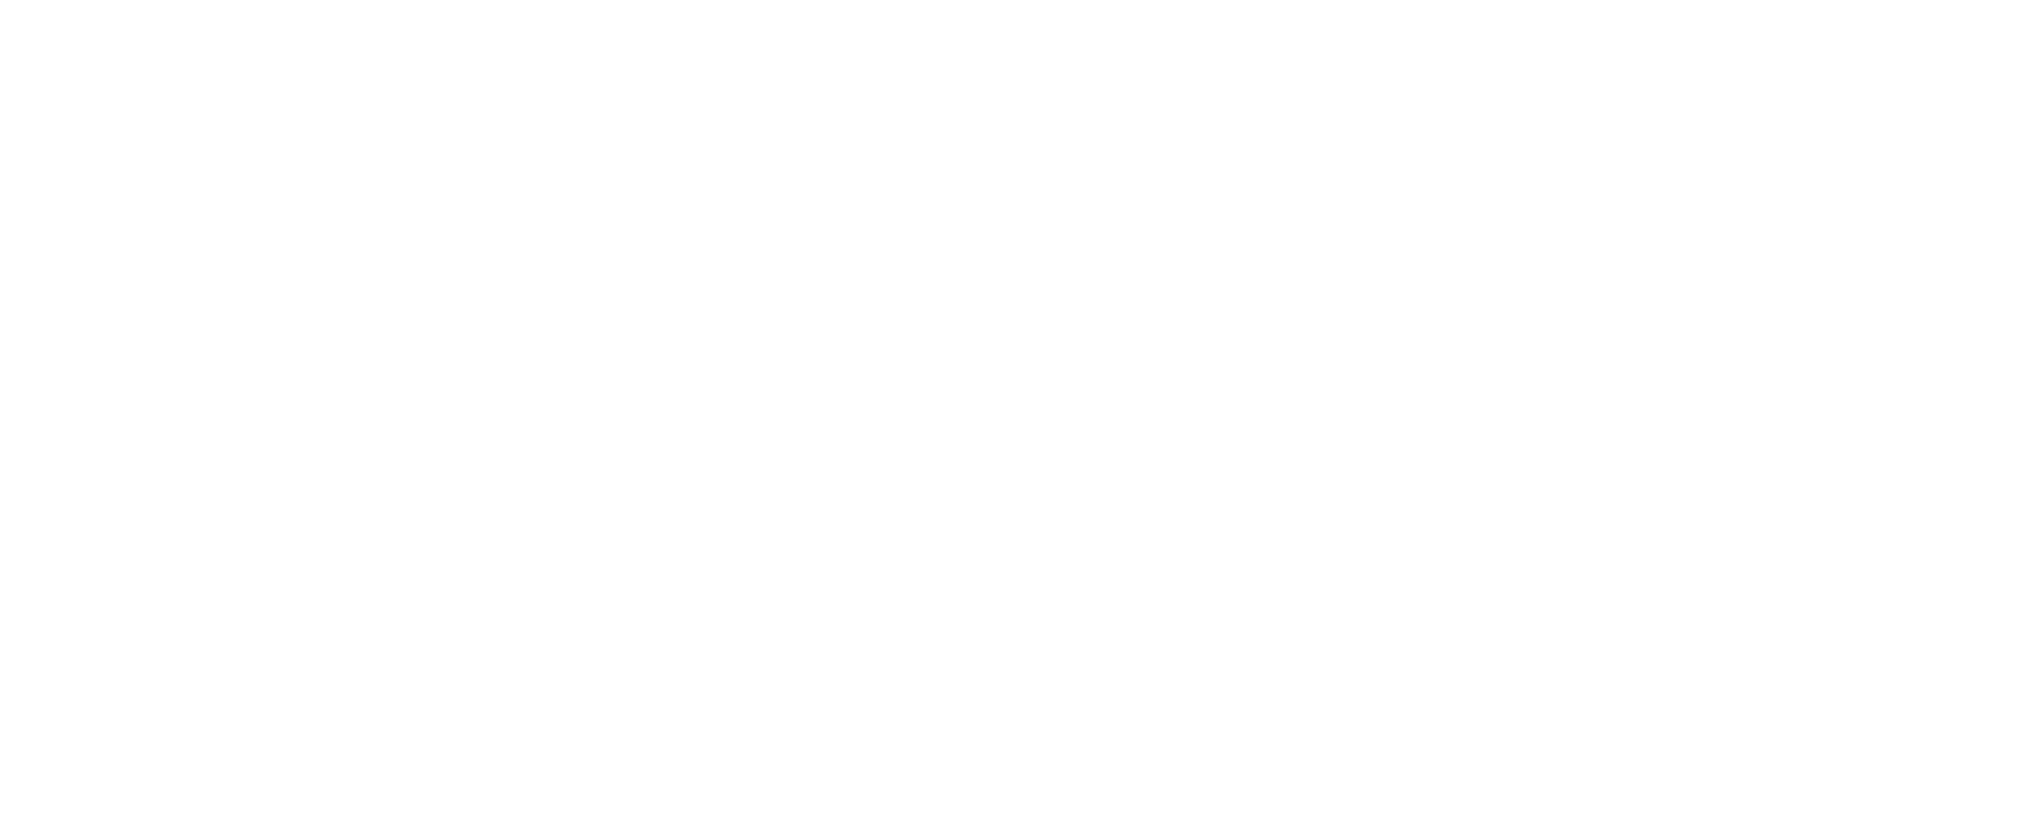 SheEmprende